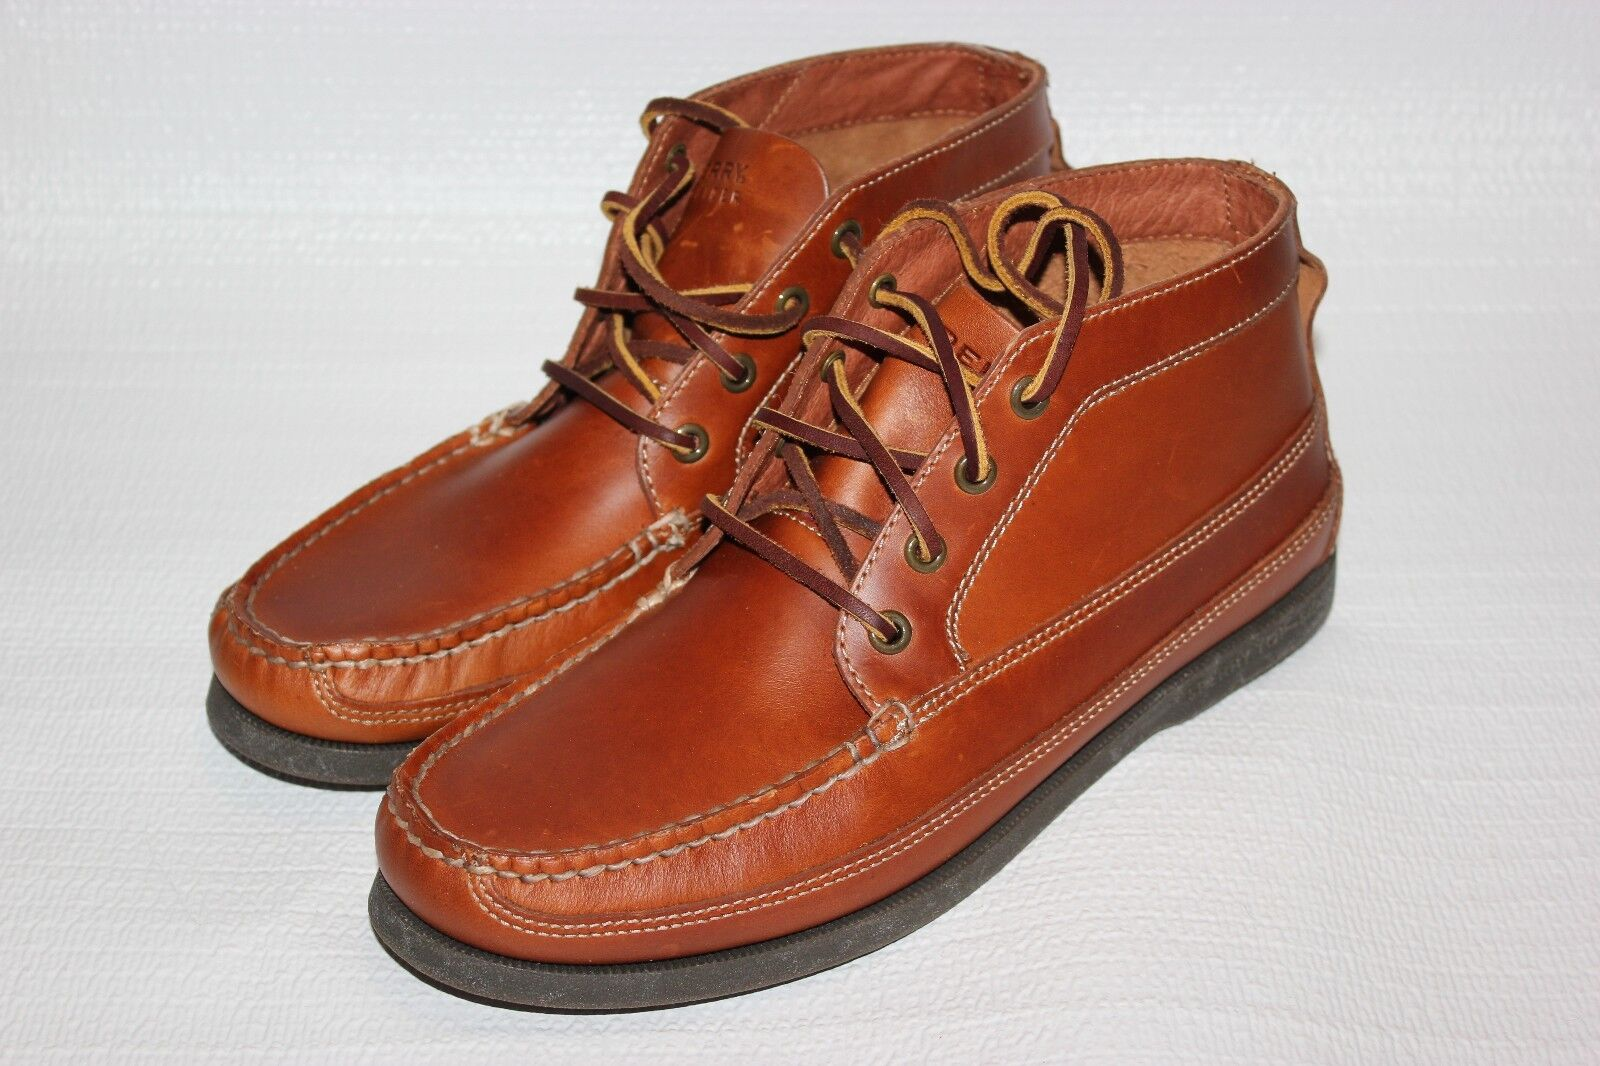 NEW Sperry for J.Crew Leather Chukka Boots  Brown Shoes Size 8.5 M